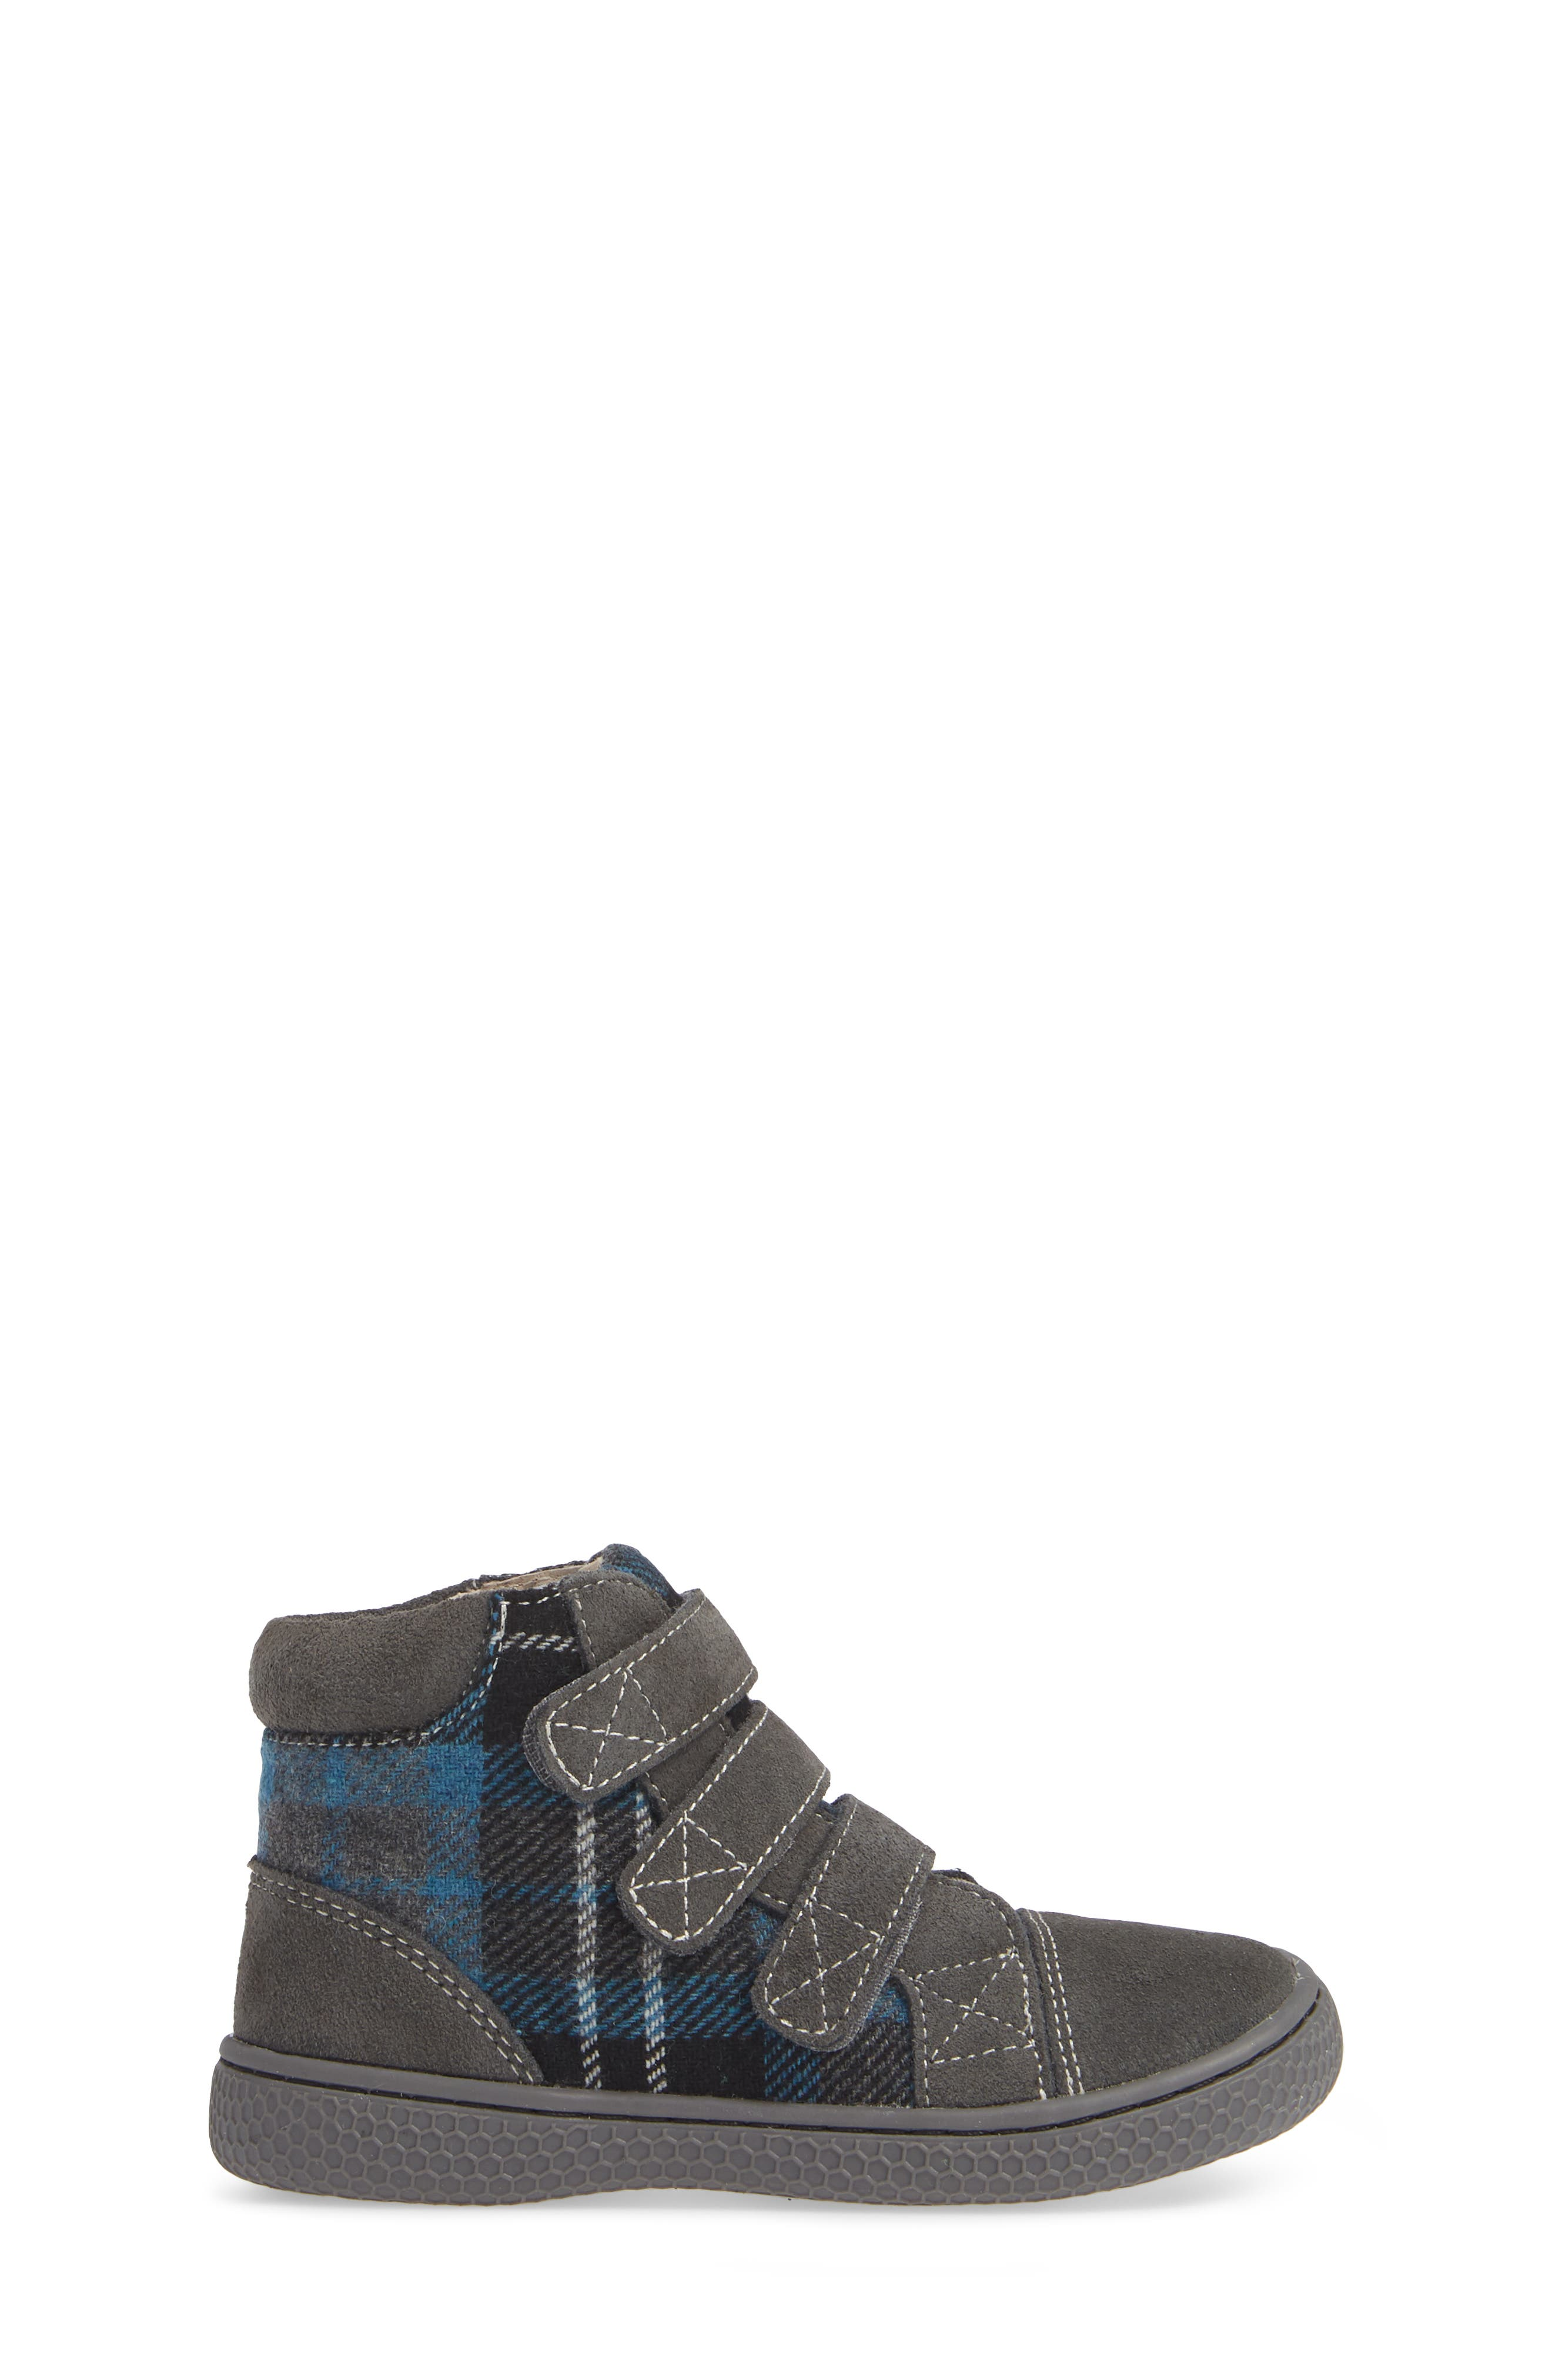 'Jamie' High Top Sneaker,                             Alternate thumbnail 3, color,                             GRAY PLAID